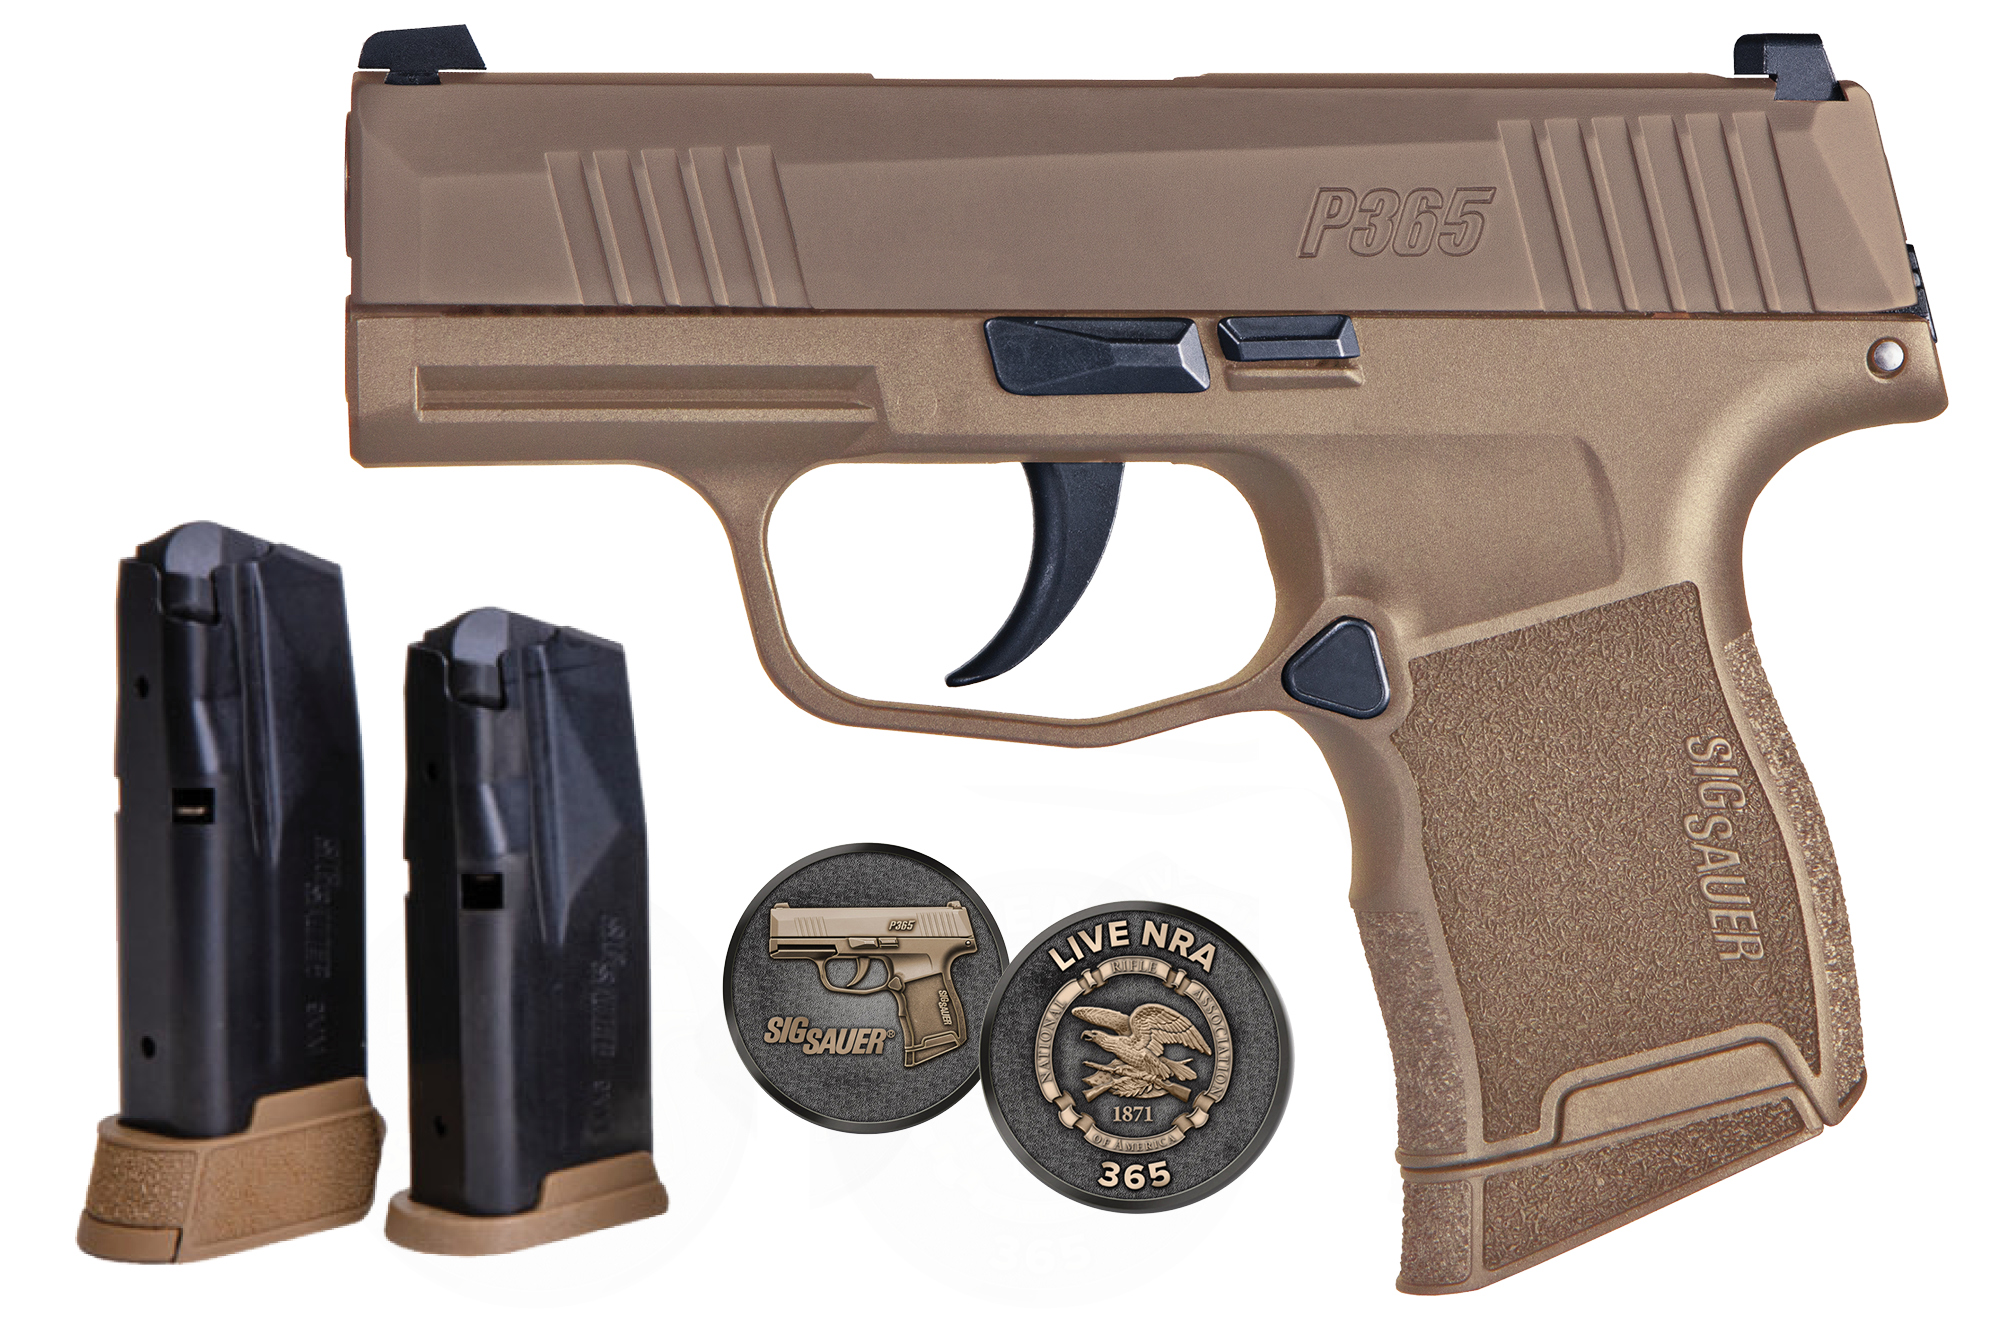 SIG SAUER P365 NRA 9mm